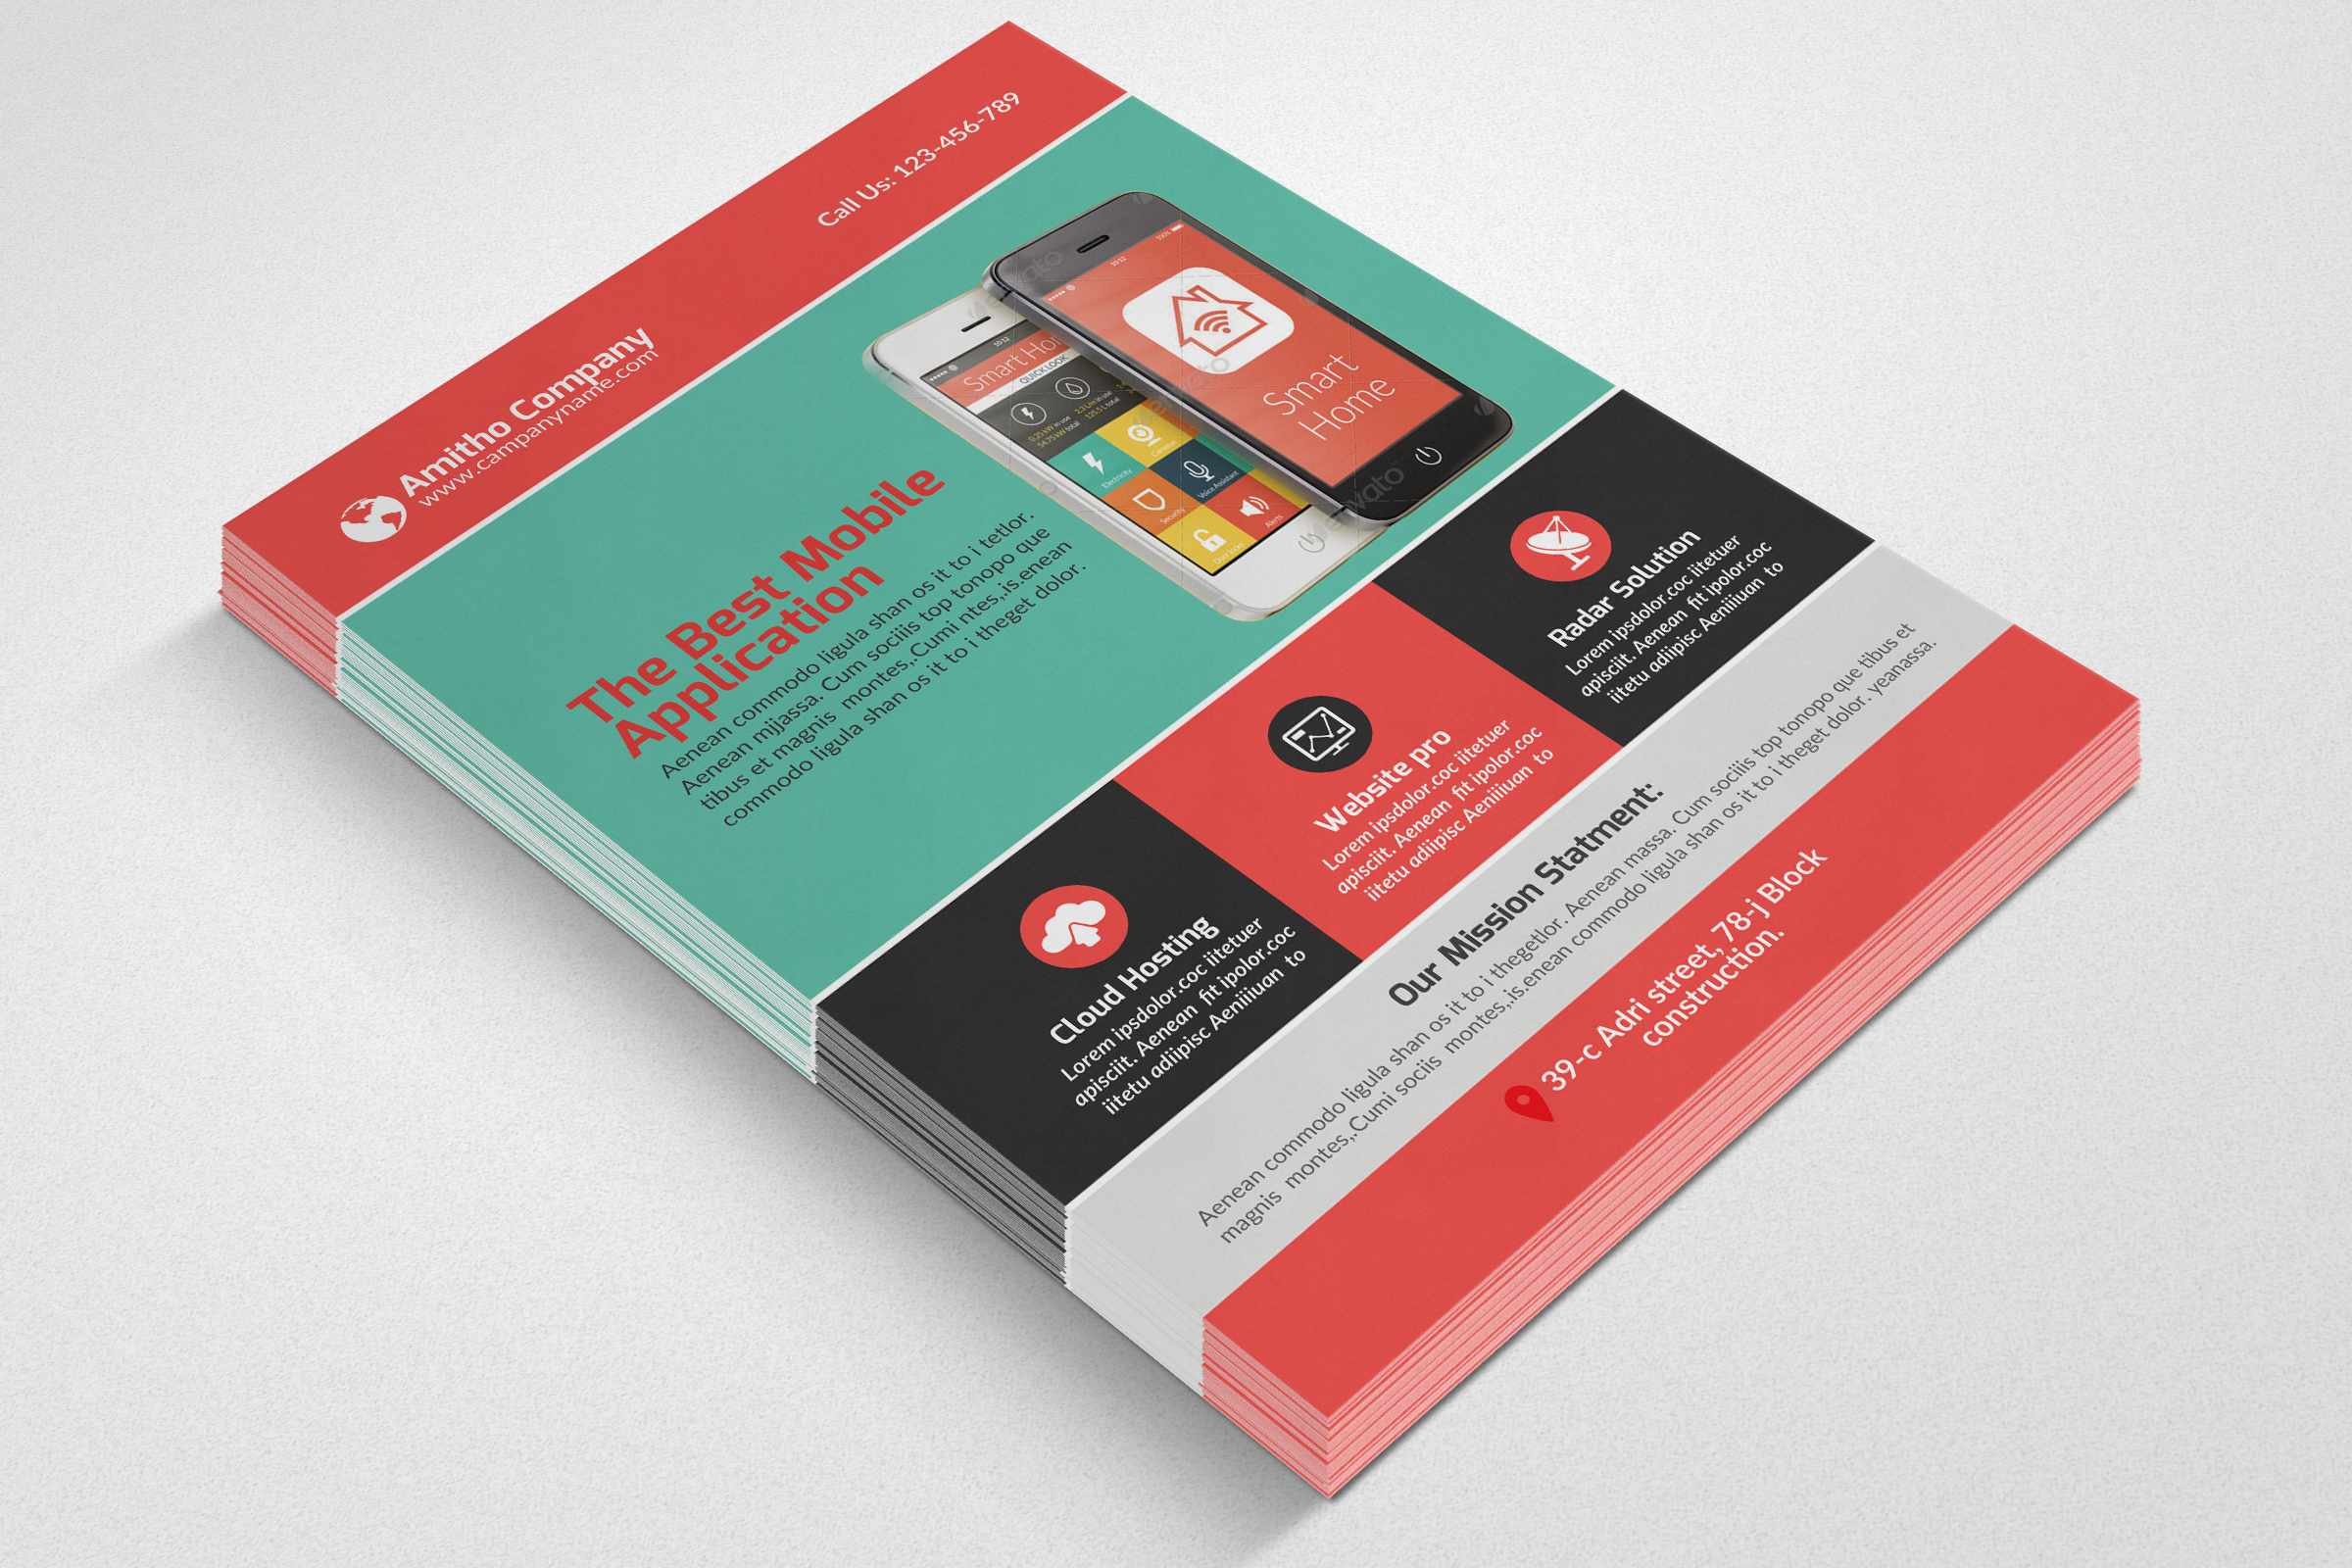 Mobile Apps Flyers example image 2